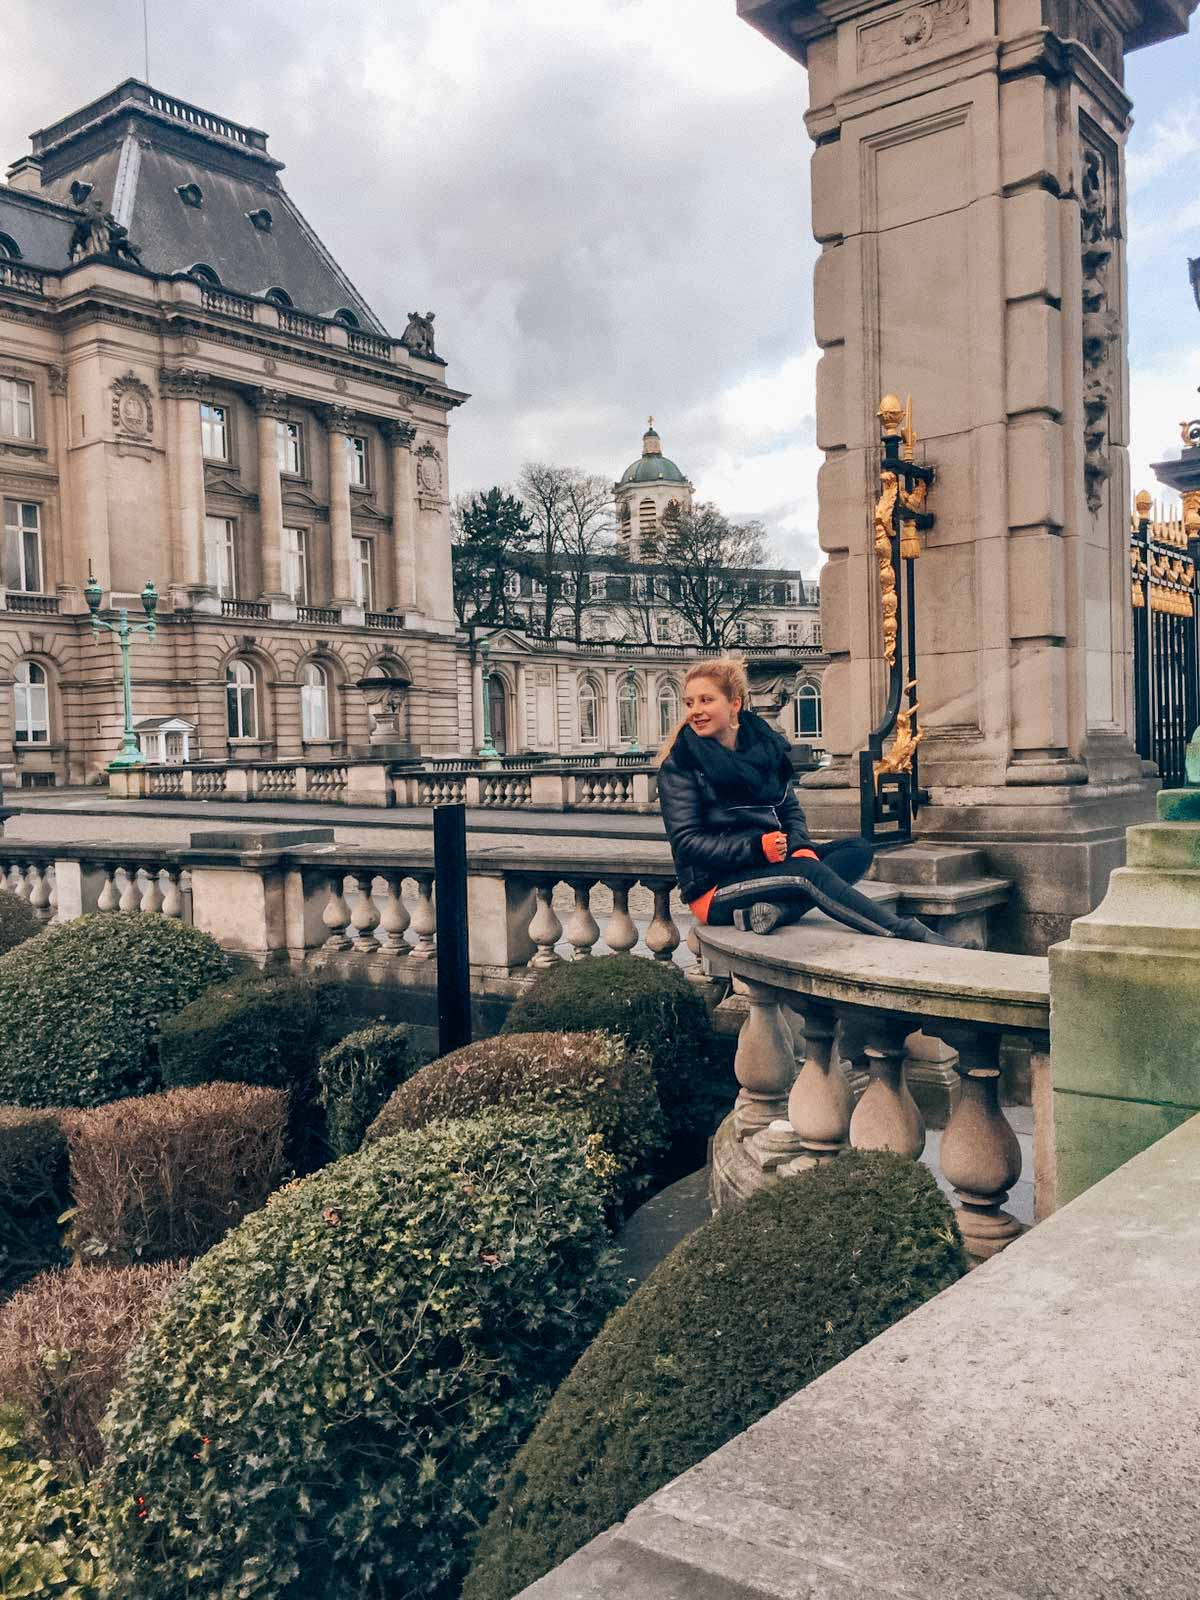 Must-see places in Brussels, the Royal Palace